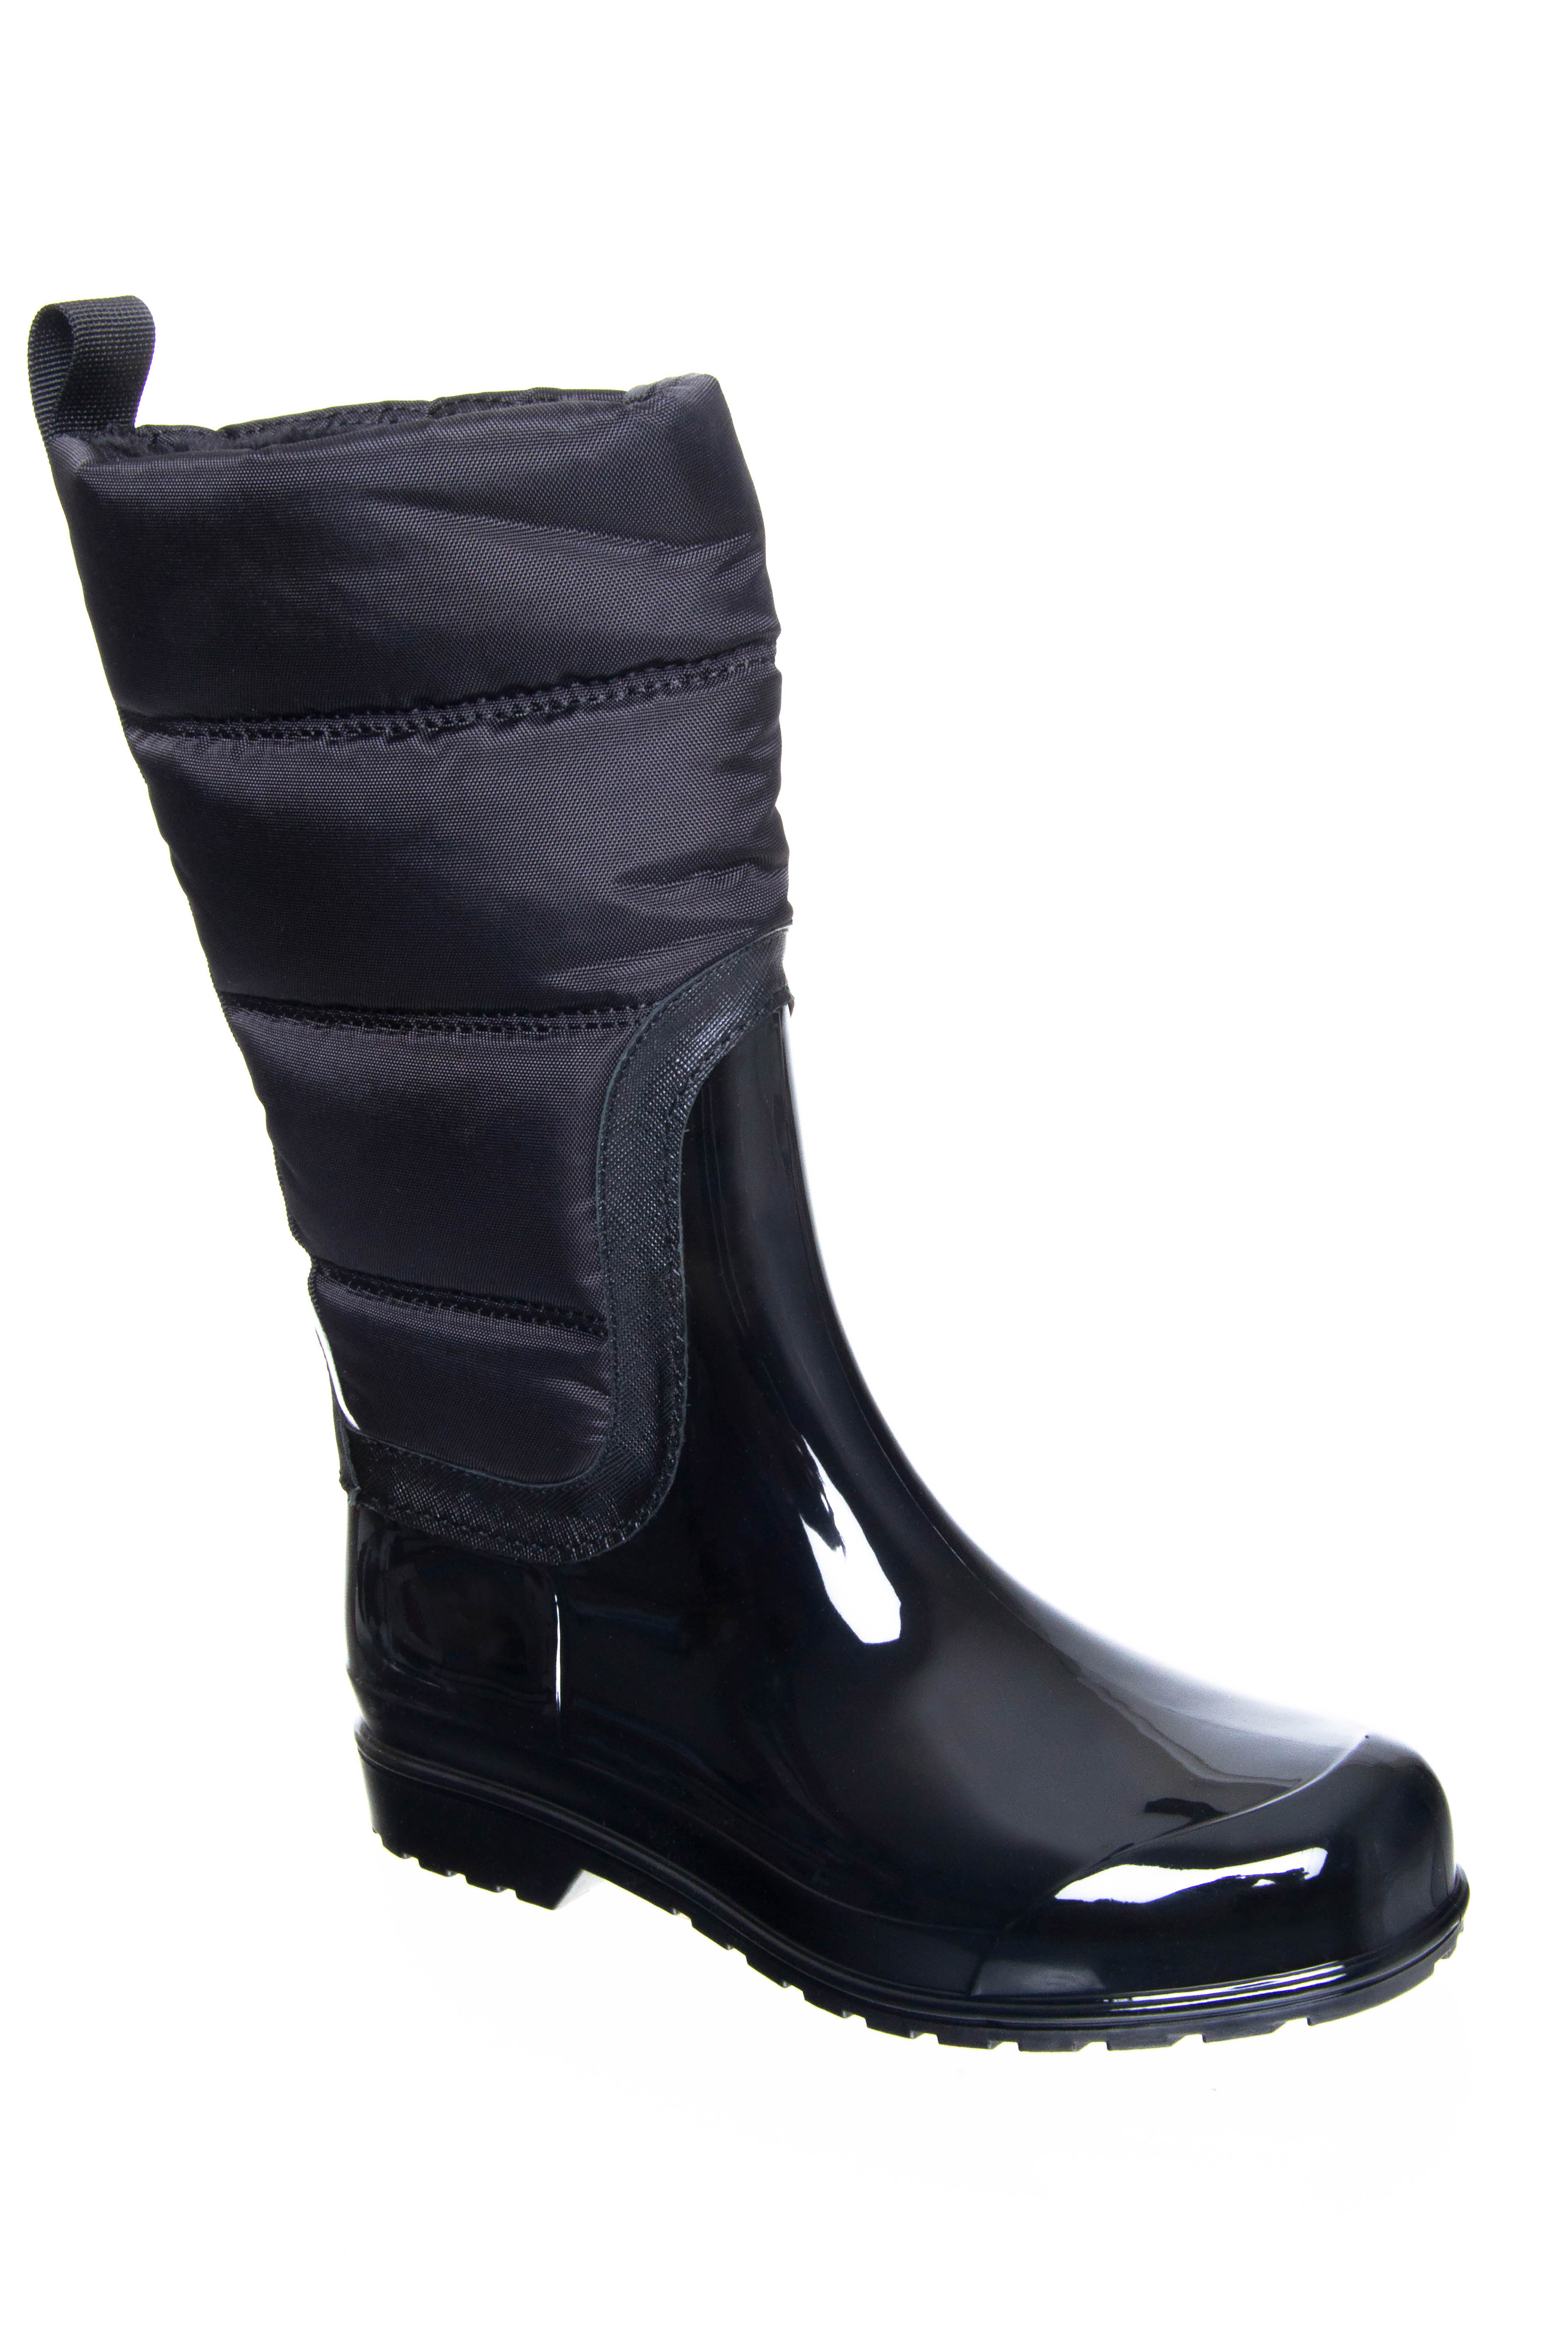 Michael Kors Cabot Quilted Rain Boots - Black